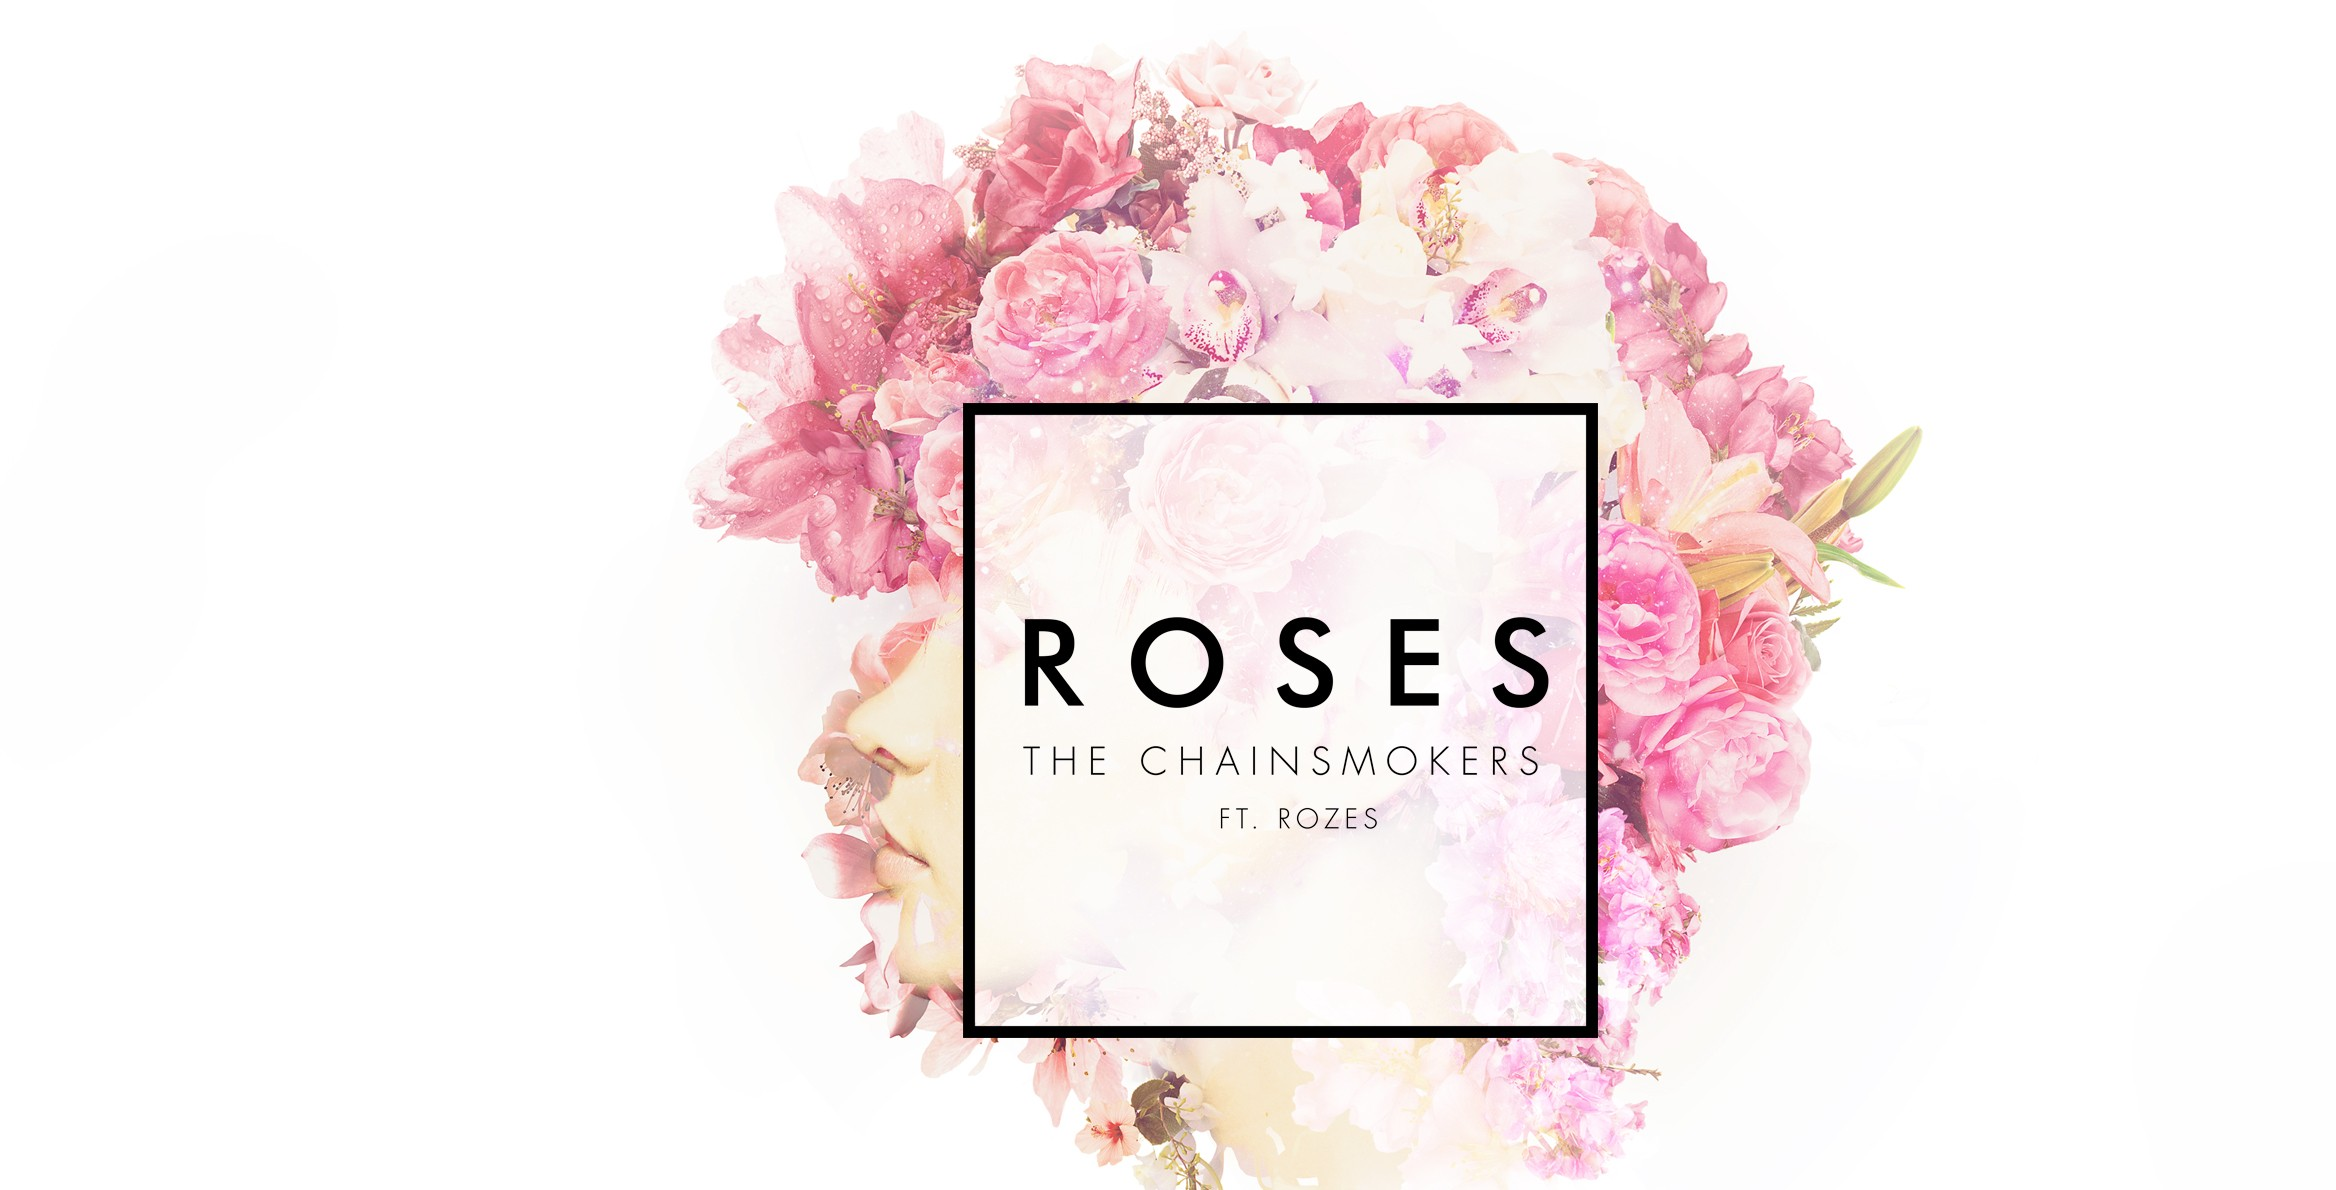 Despacito Wallpaper Hd Quot Roses Quot Becomes The Chainsmokers Highest Charting Pop